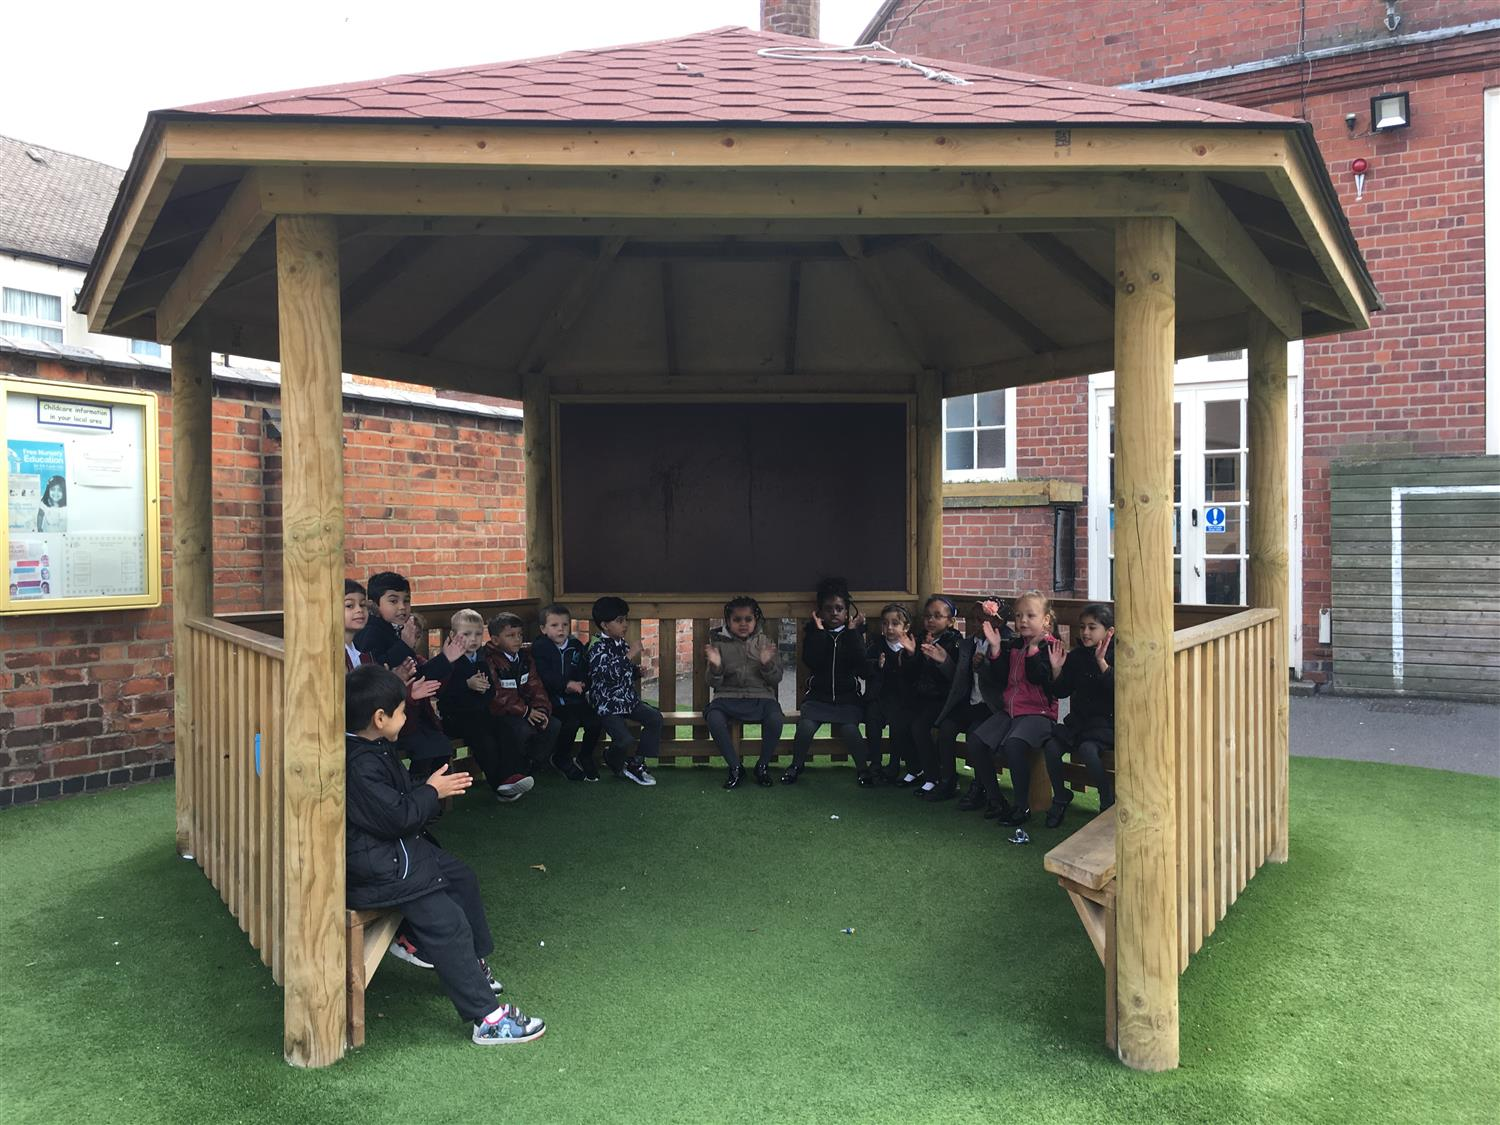 Hazel Primary S Magnificent School Playground Pentagon Play